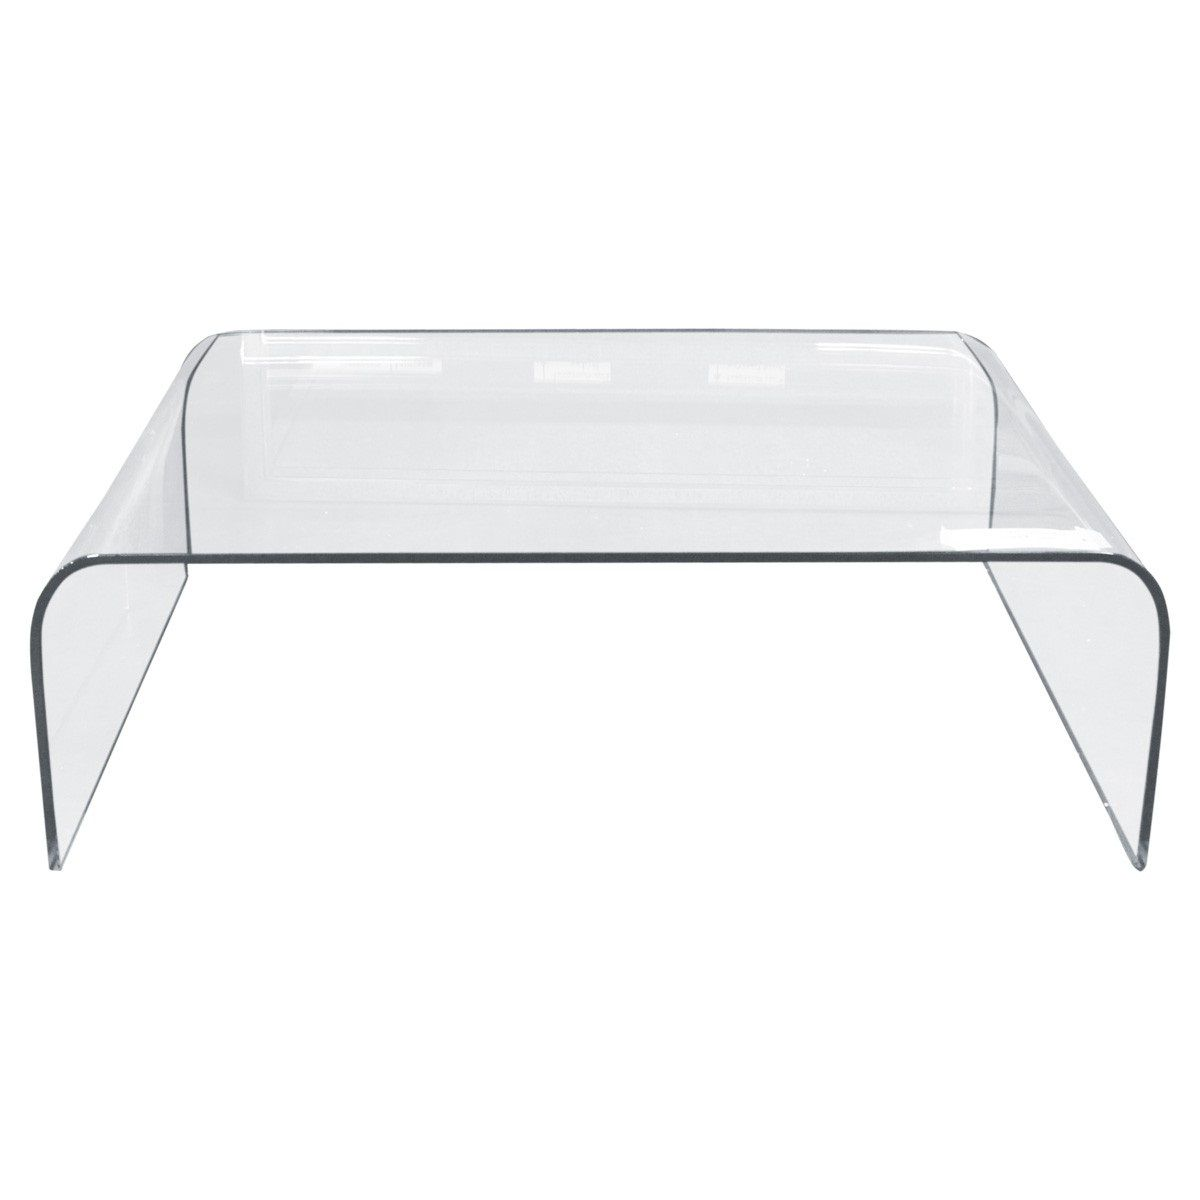 bent glass waterfall coffee table | glass table | pinterest